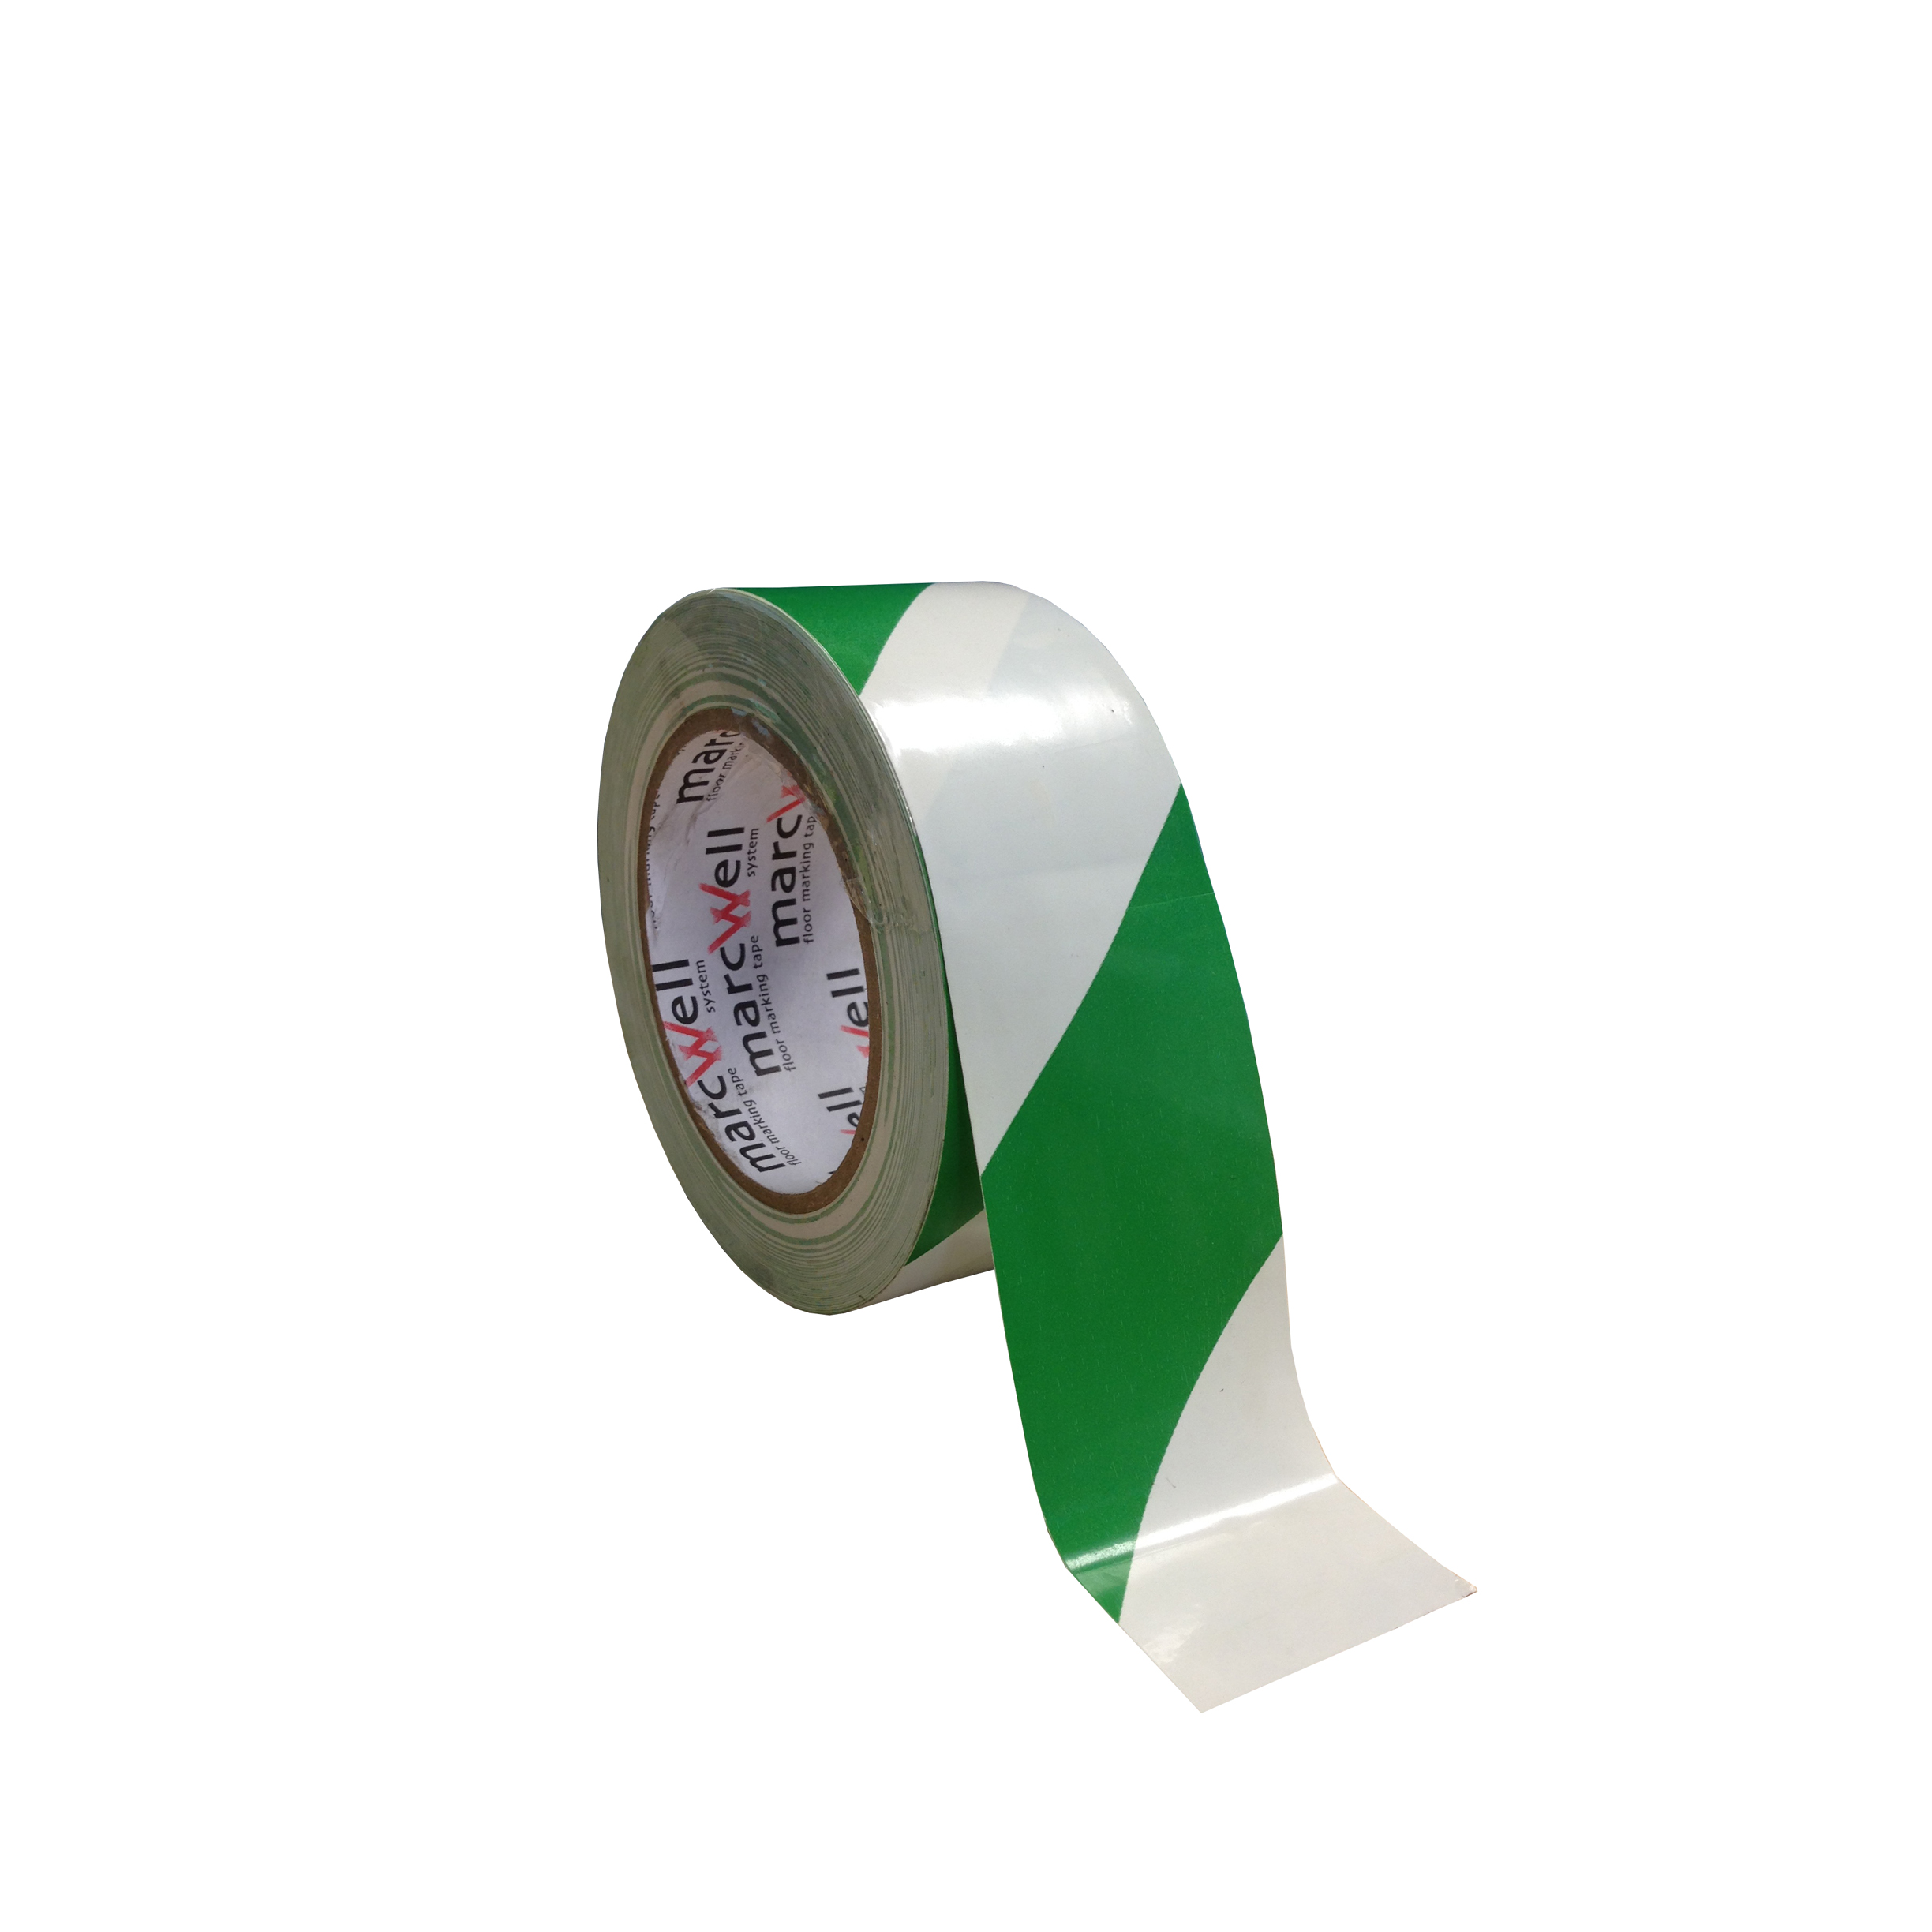 Tape - floor marking hazard green/white (packed 18 rolls/box)